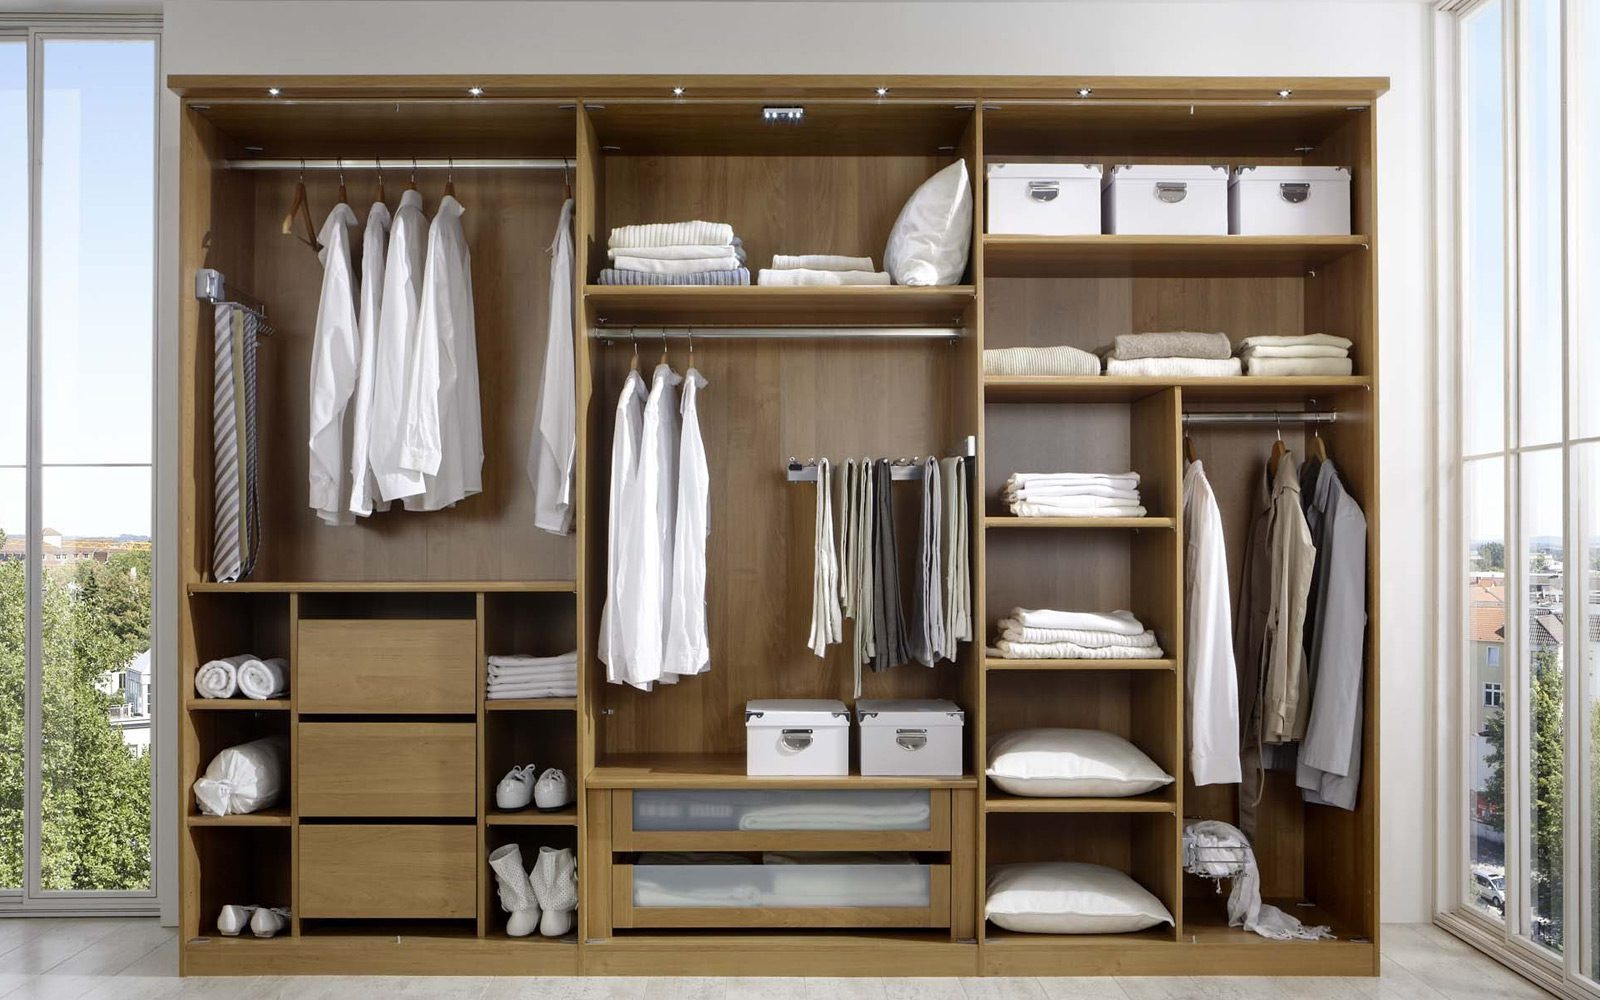 Organized closet with white clothes